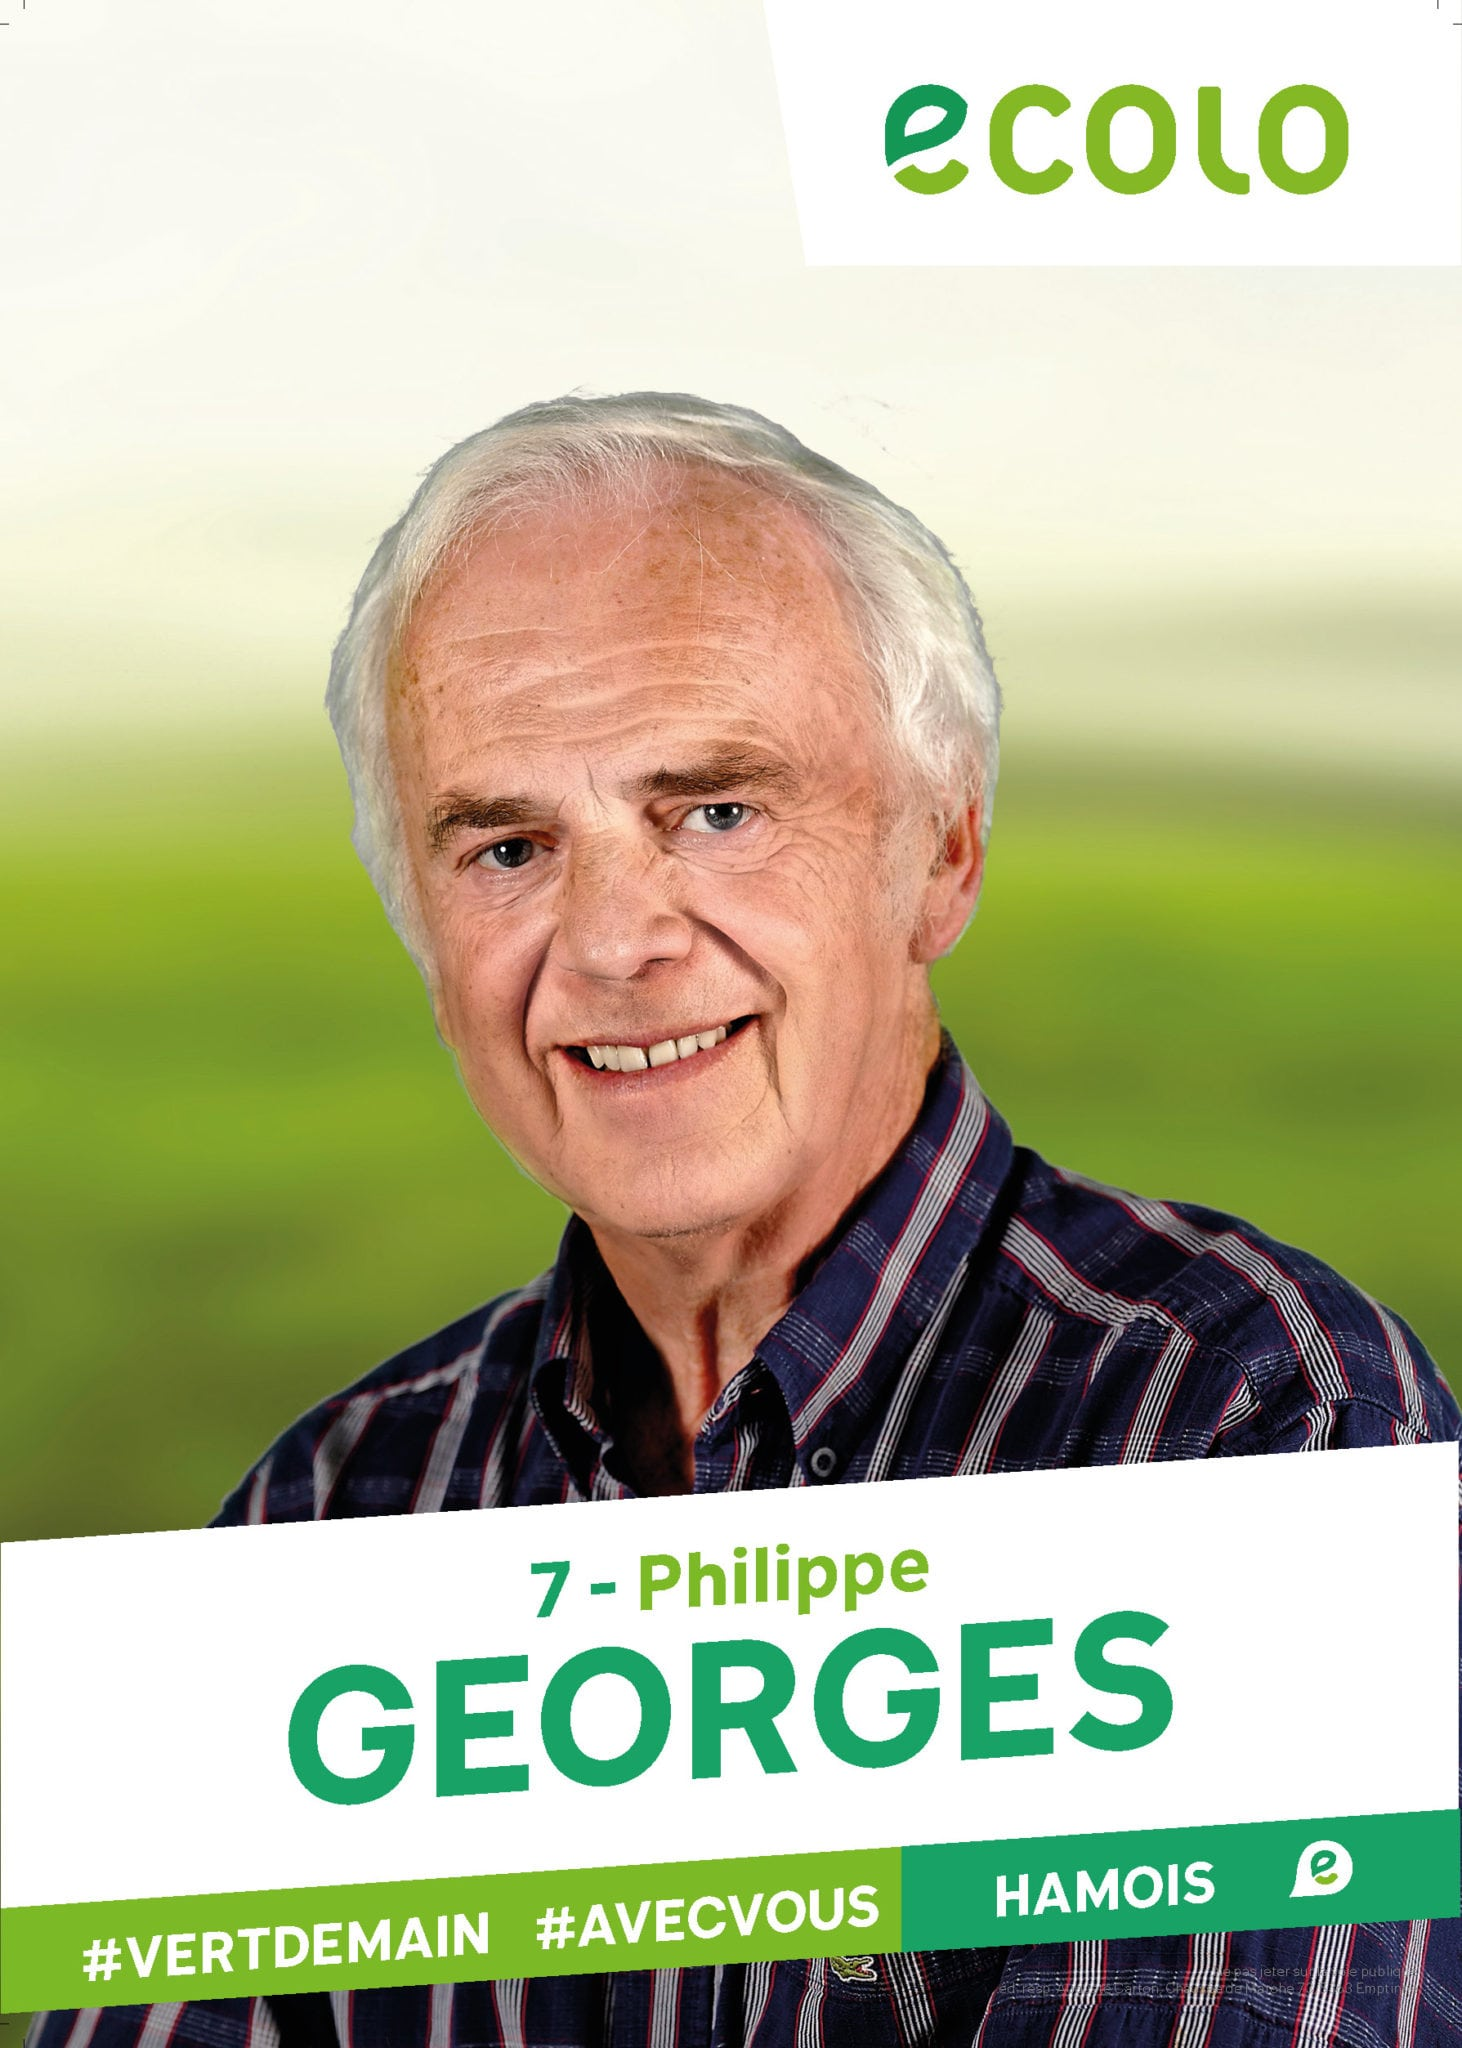 7 -Philippe GEORGES